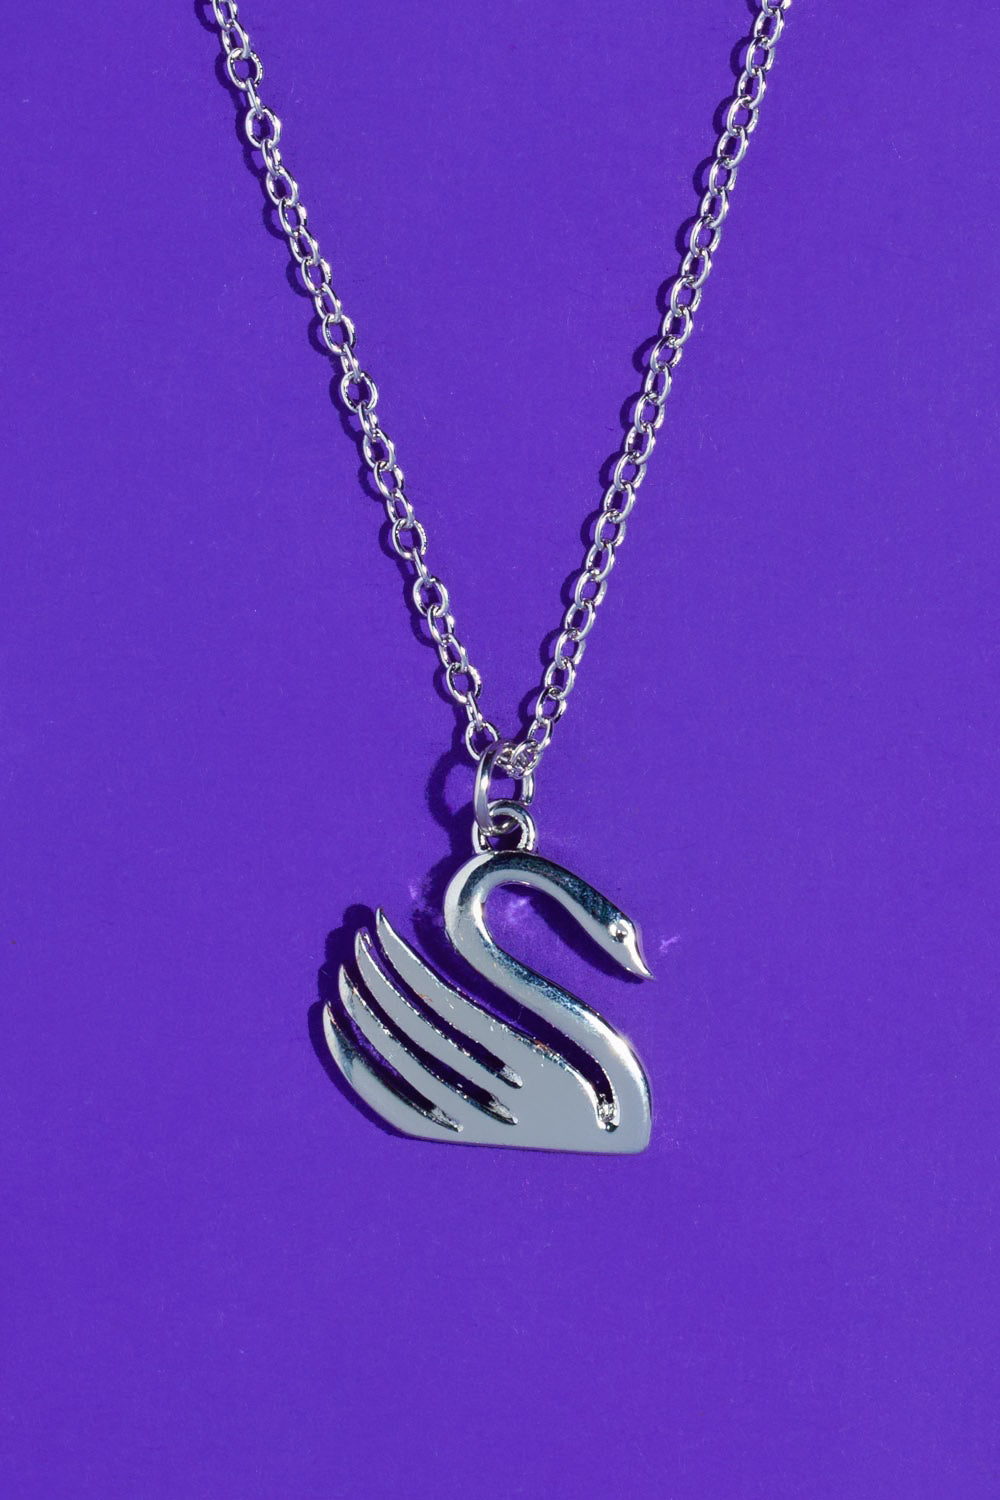 Type 4 Swan Necklace - Silver